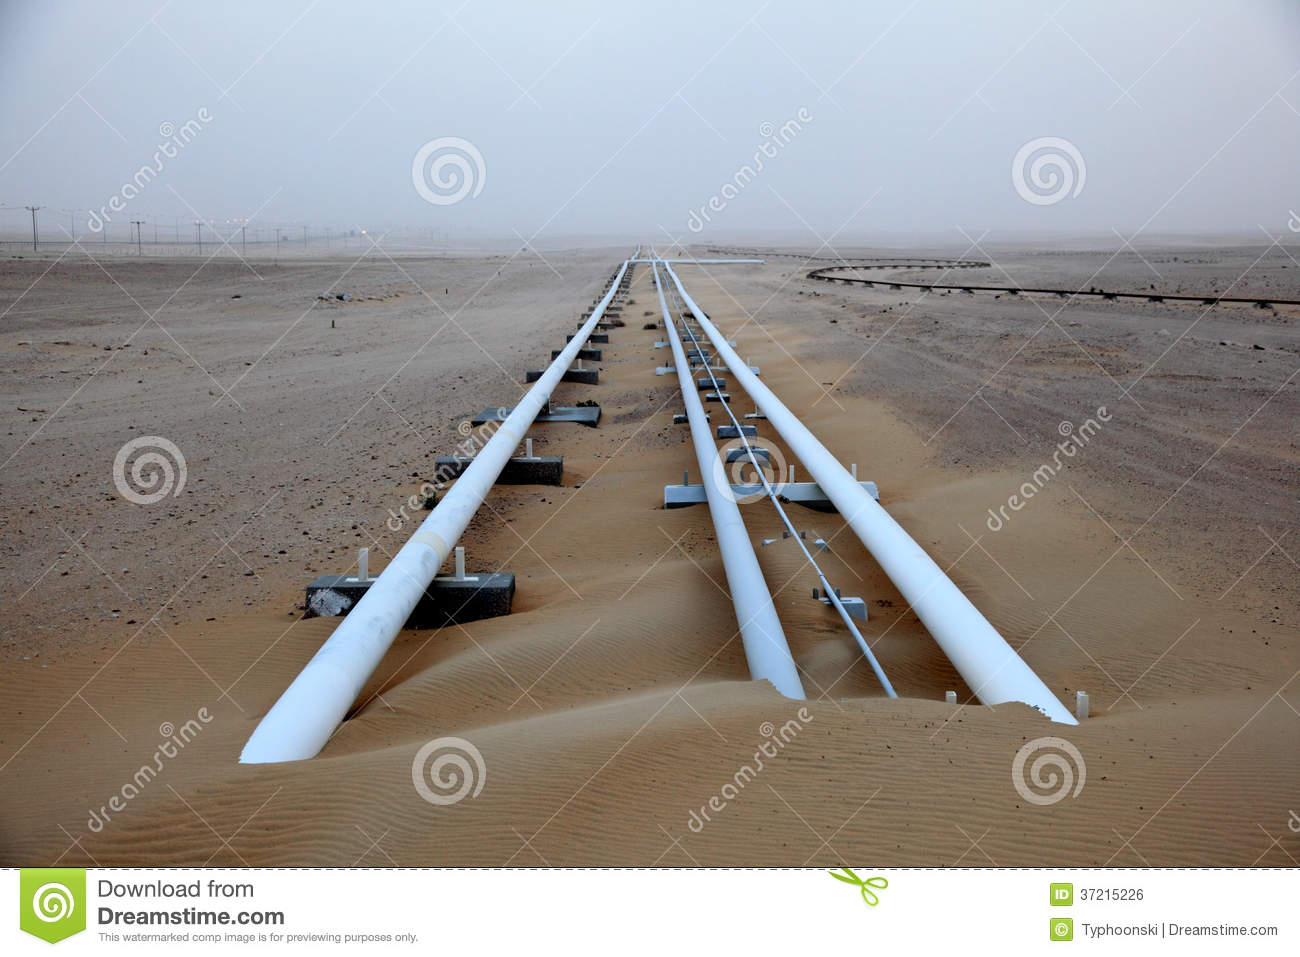 Oil Pipeline In Qatar Royalty Free Stock Image - Image: 37215226